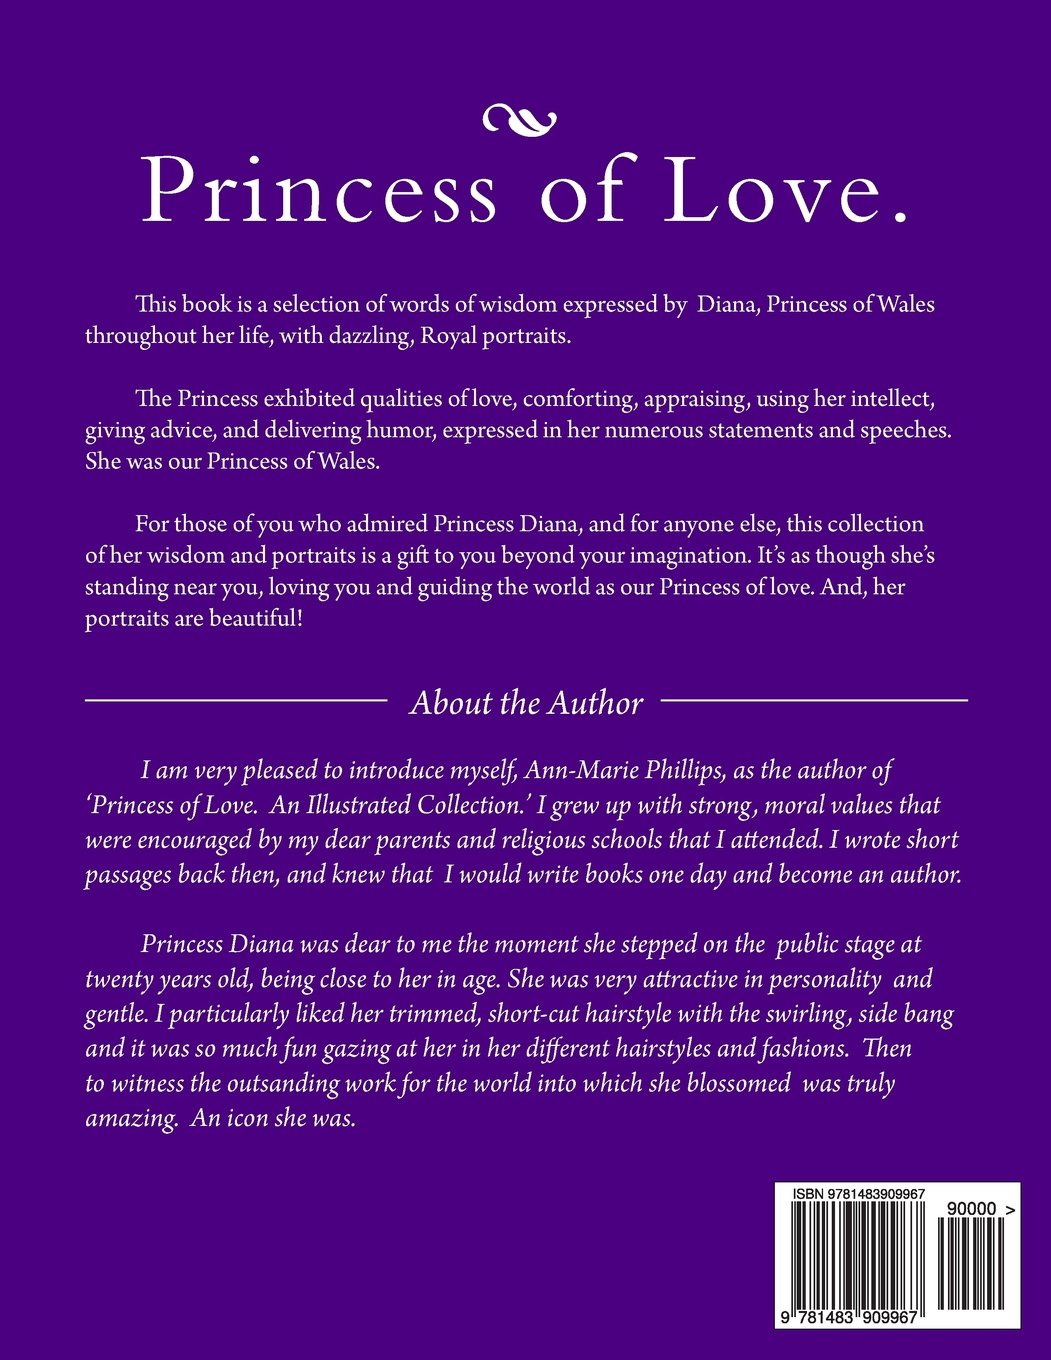 Princess of Love.: An Illustrated Collection. (Illustrated History of Diana, Princess od Wales) (Volume 3) Ann-Marie Phillips